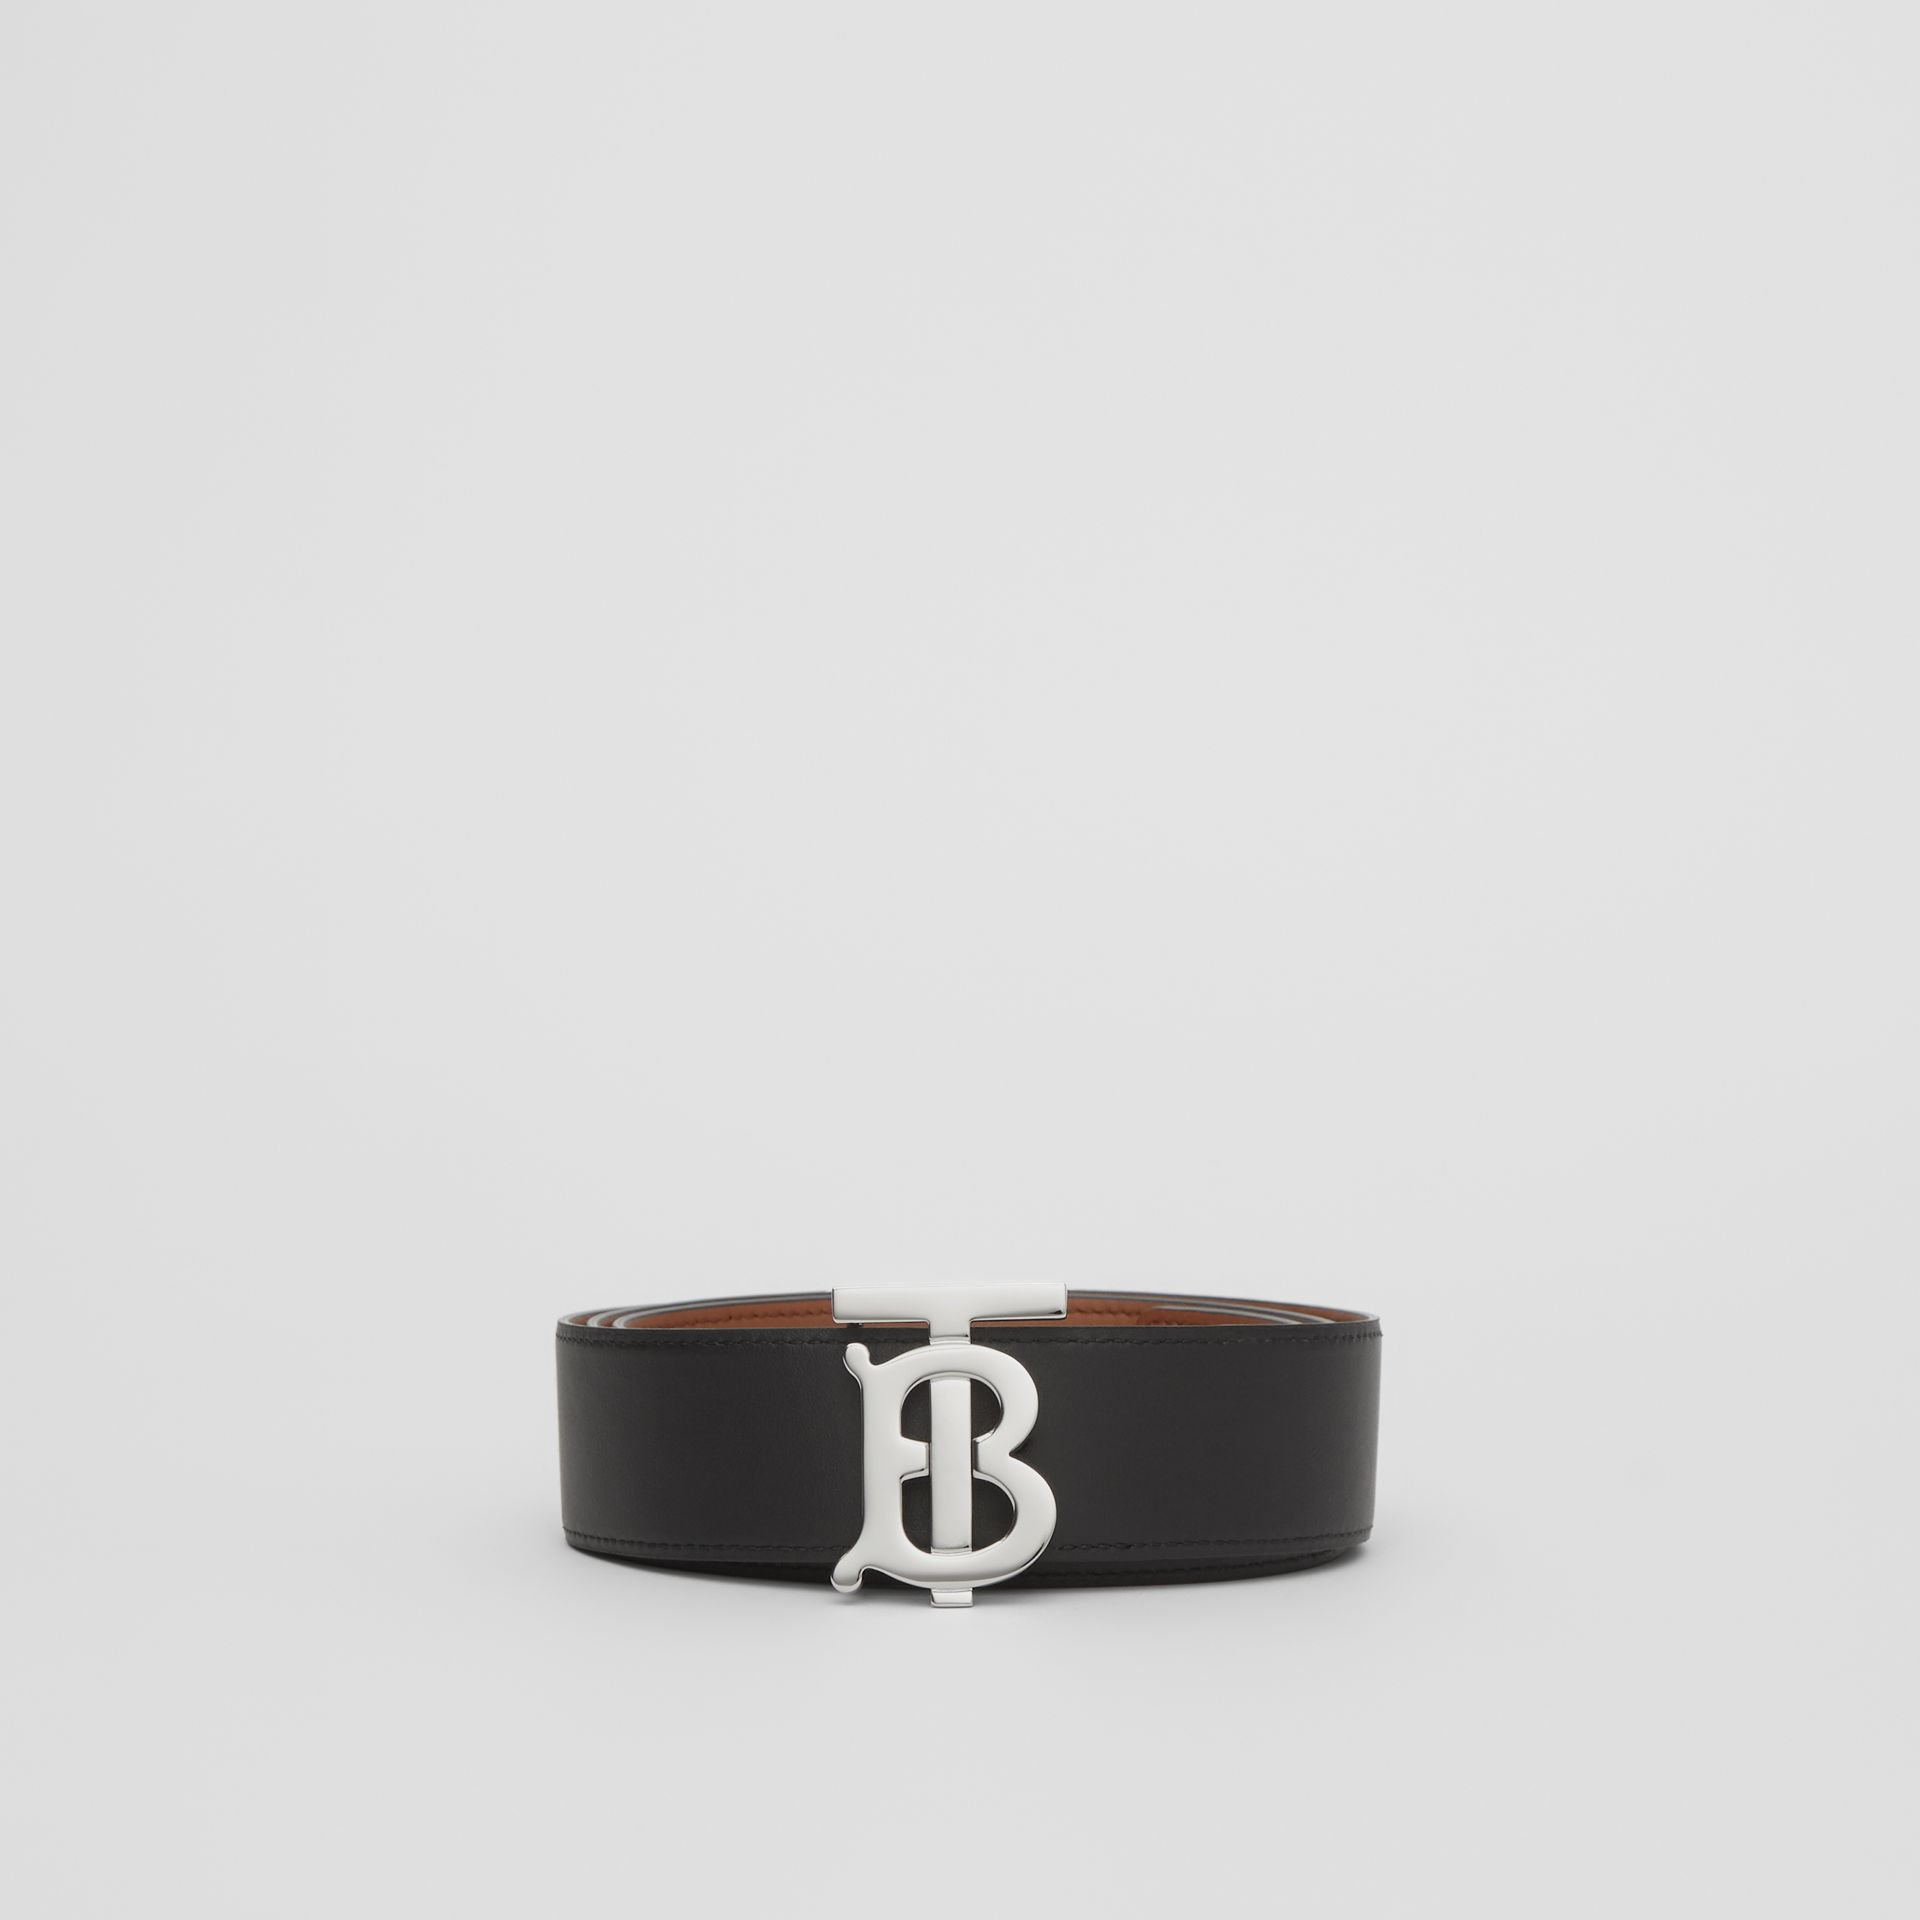 Reversible Monogram Motif Leather Belt in Malt Brown/black - Women | Burberry United Kingdom - gallery image 7